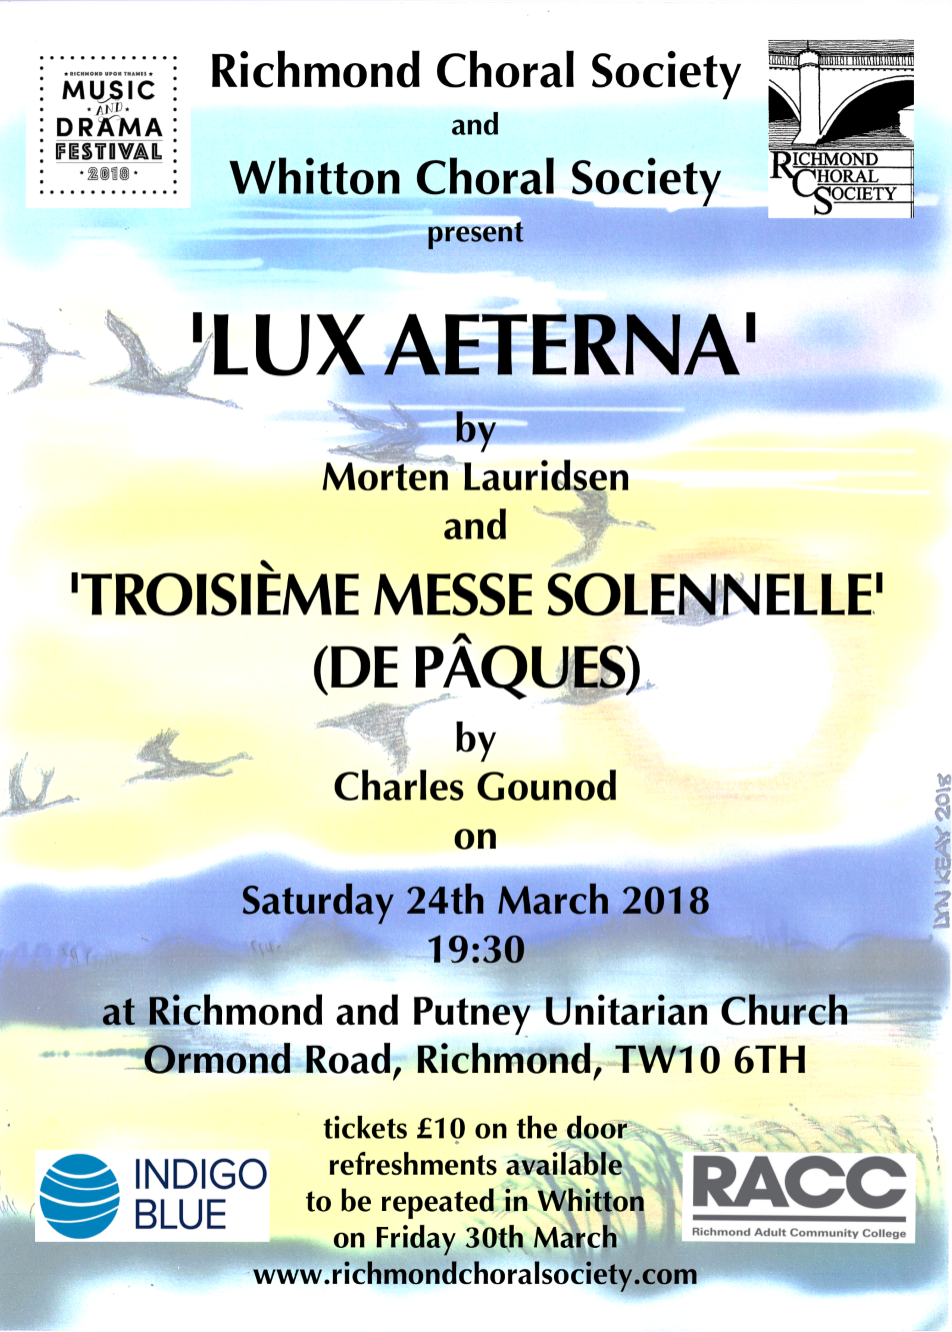 Richmond Choral Society and Whitton Choral Society - Music for Easter